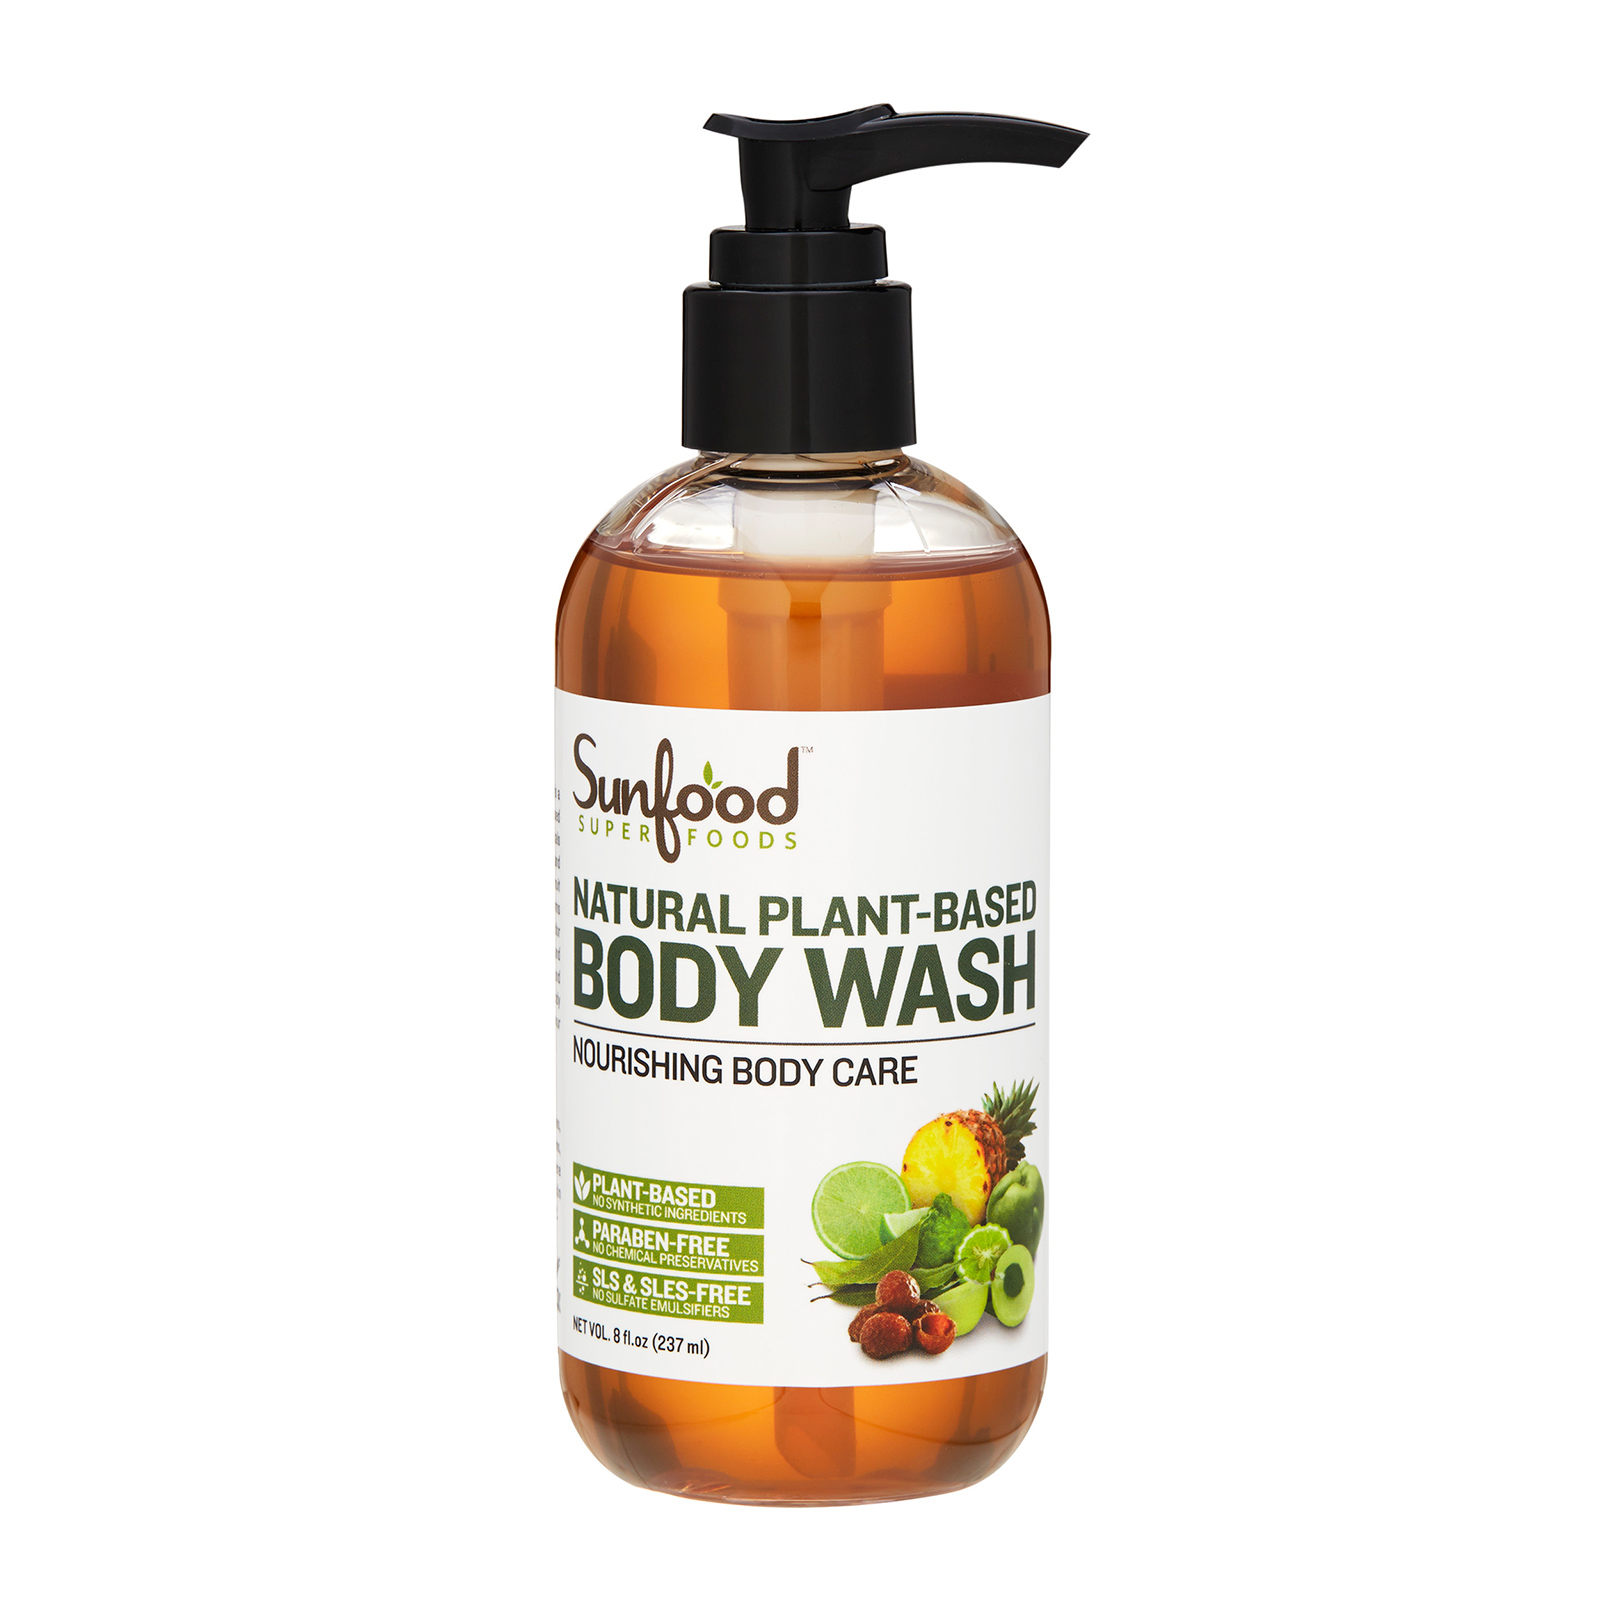 Sunfood  Natural Plant-based Body Wash (For All Skin Types) 8oz, 237ml